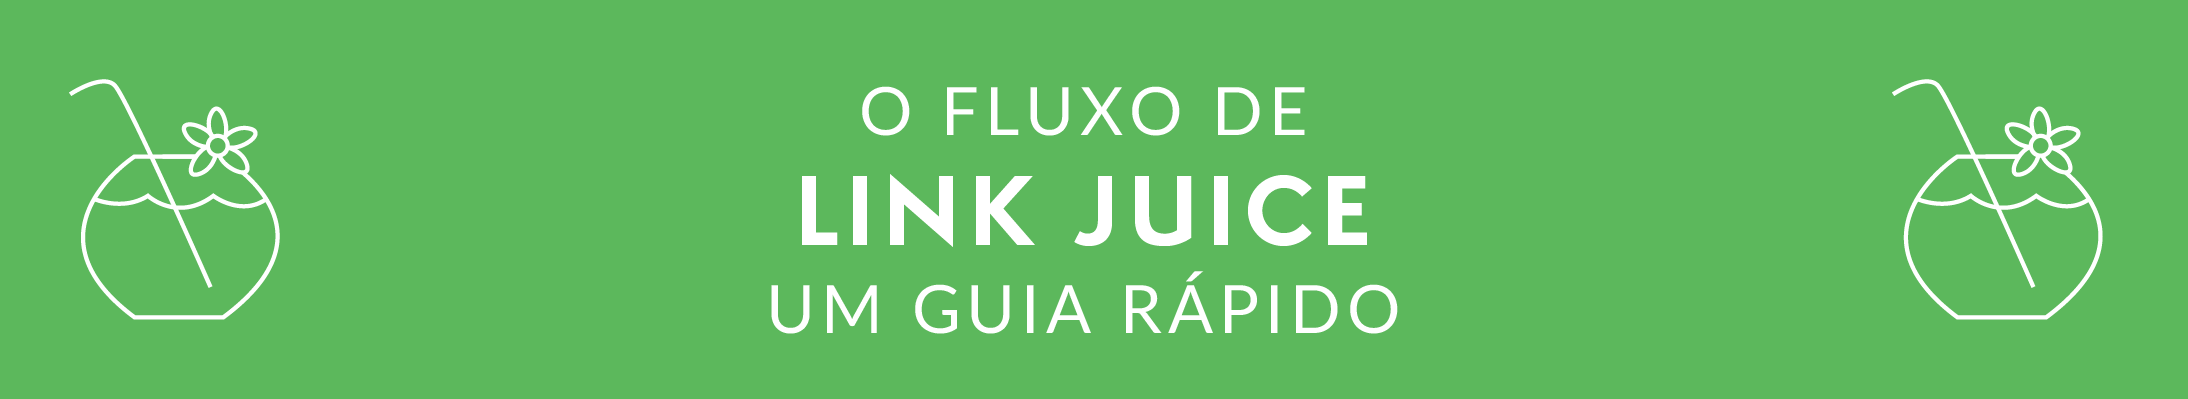 PT - SEO GUIDE - Link Juice